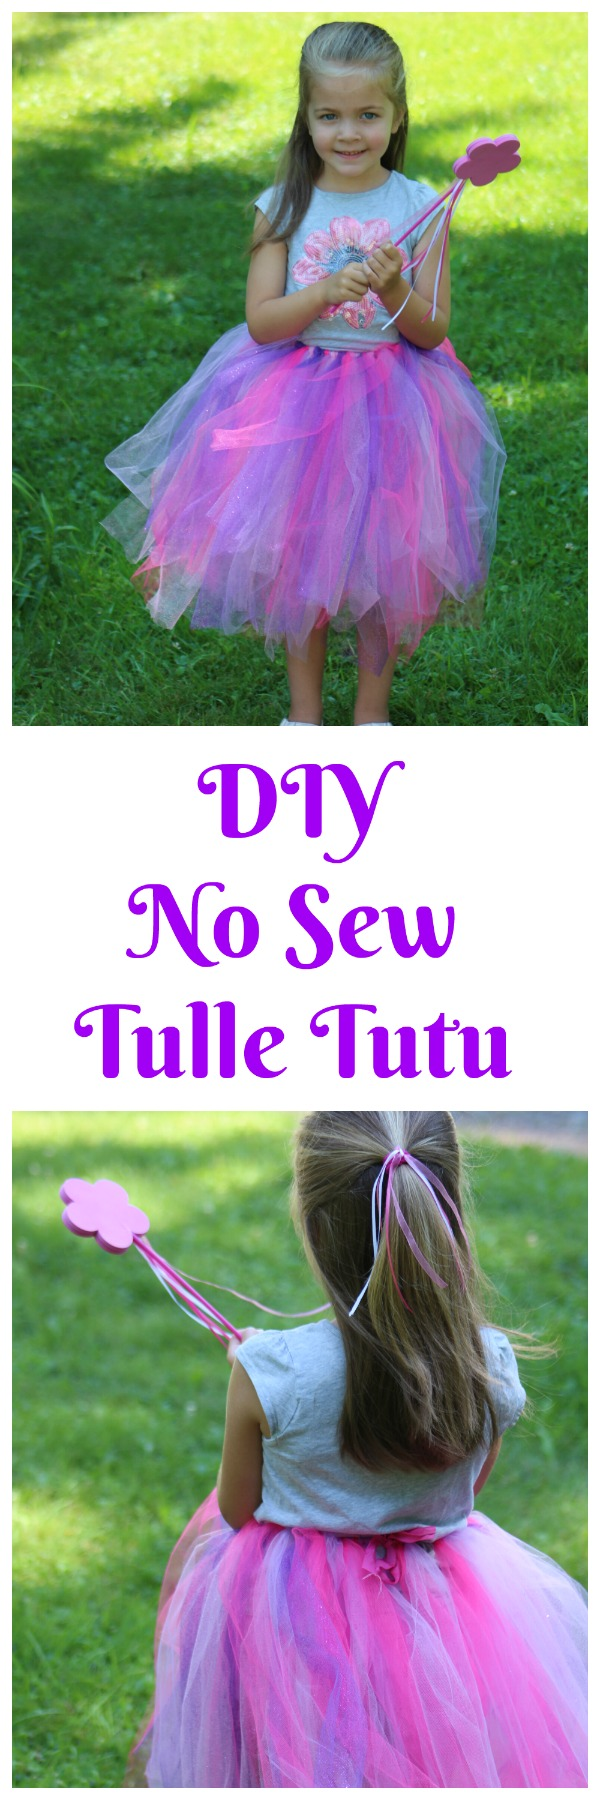 DIY No Sew Tulle Tutu--this princess inspired tulle tutu is easy to make, with no special tools and takes only minutes to make! It's so easy my kids helped me do it! Perfect for your little princess!